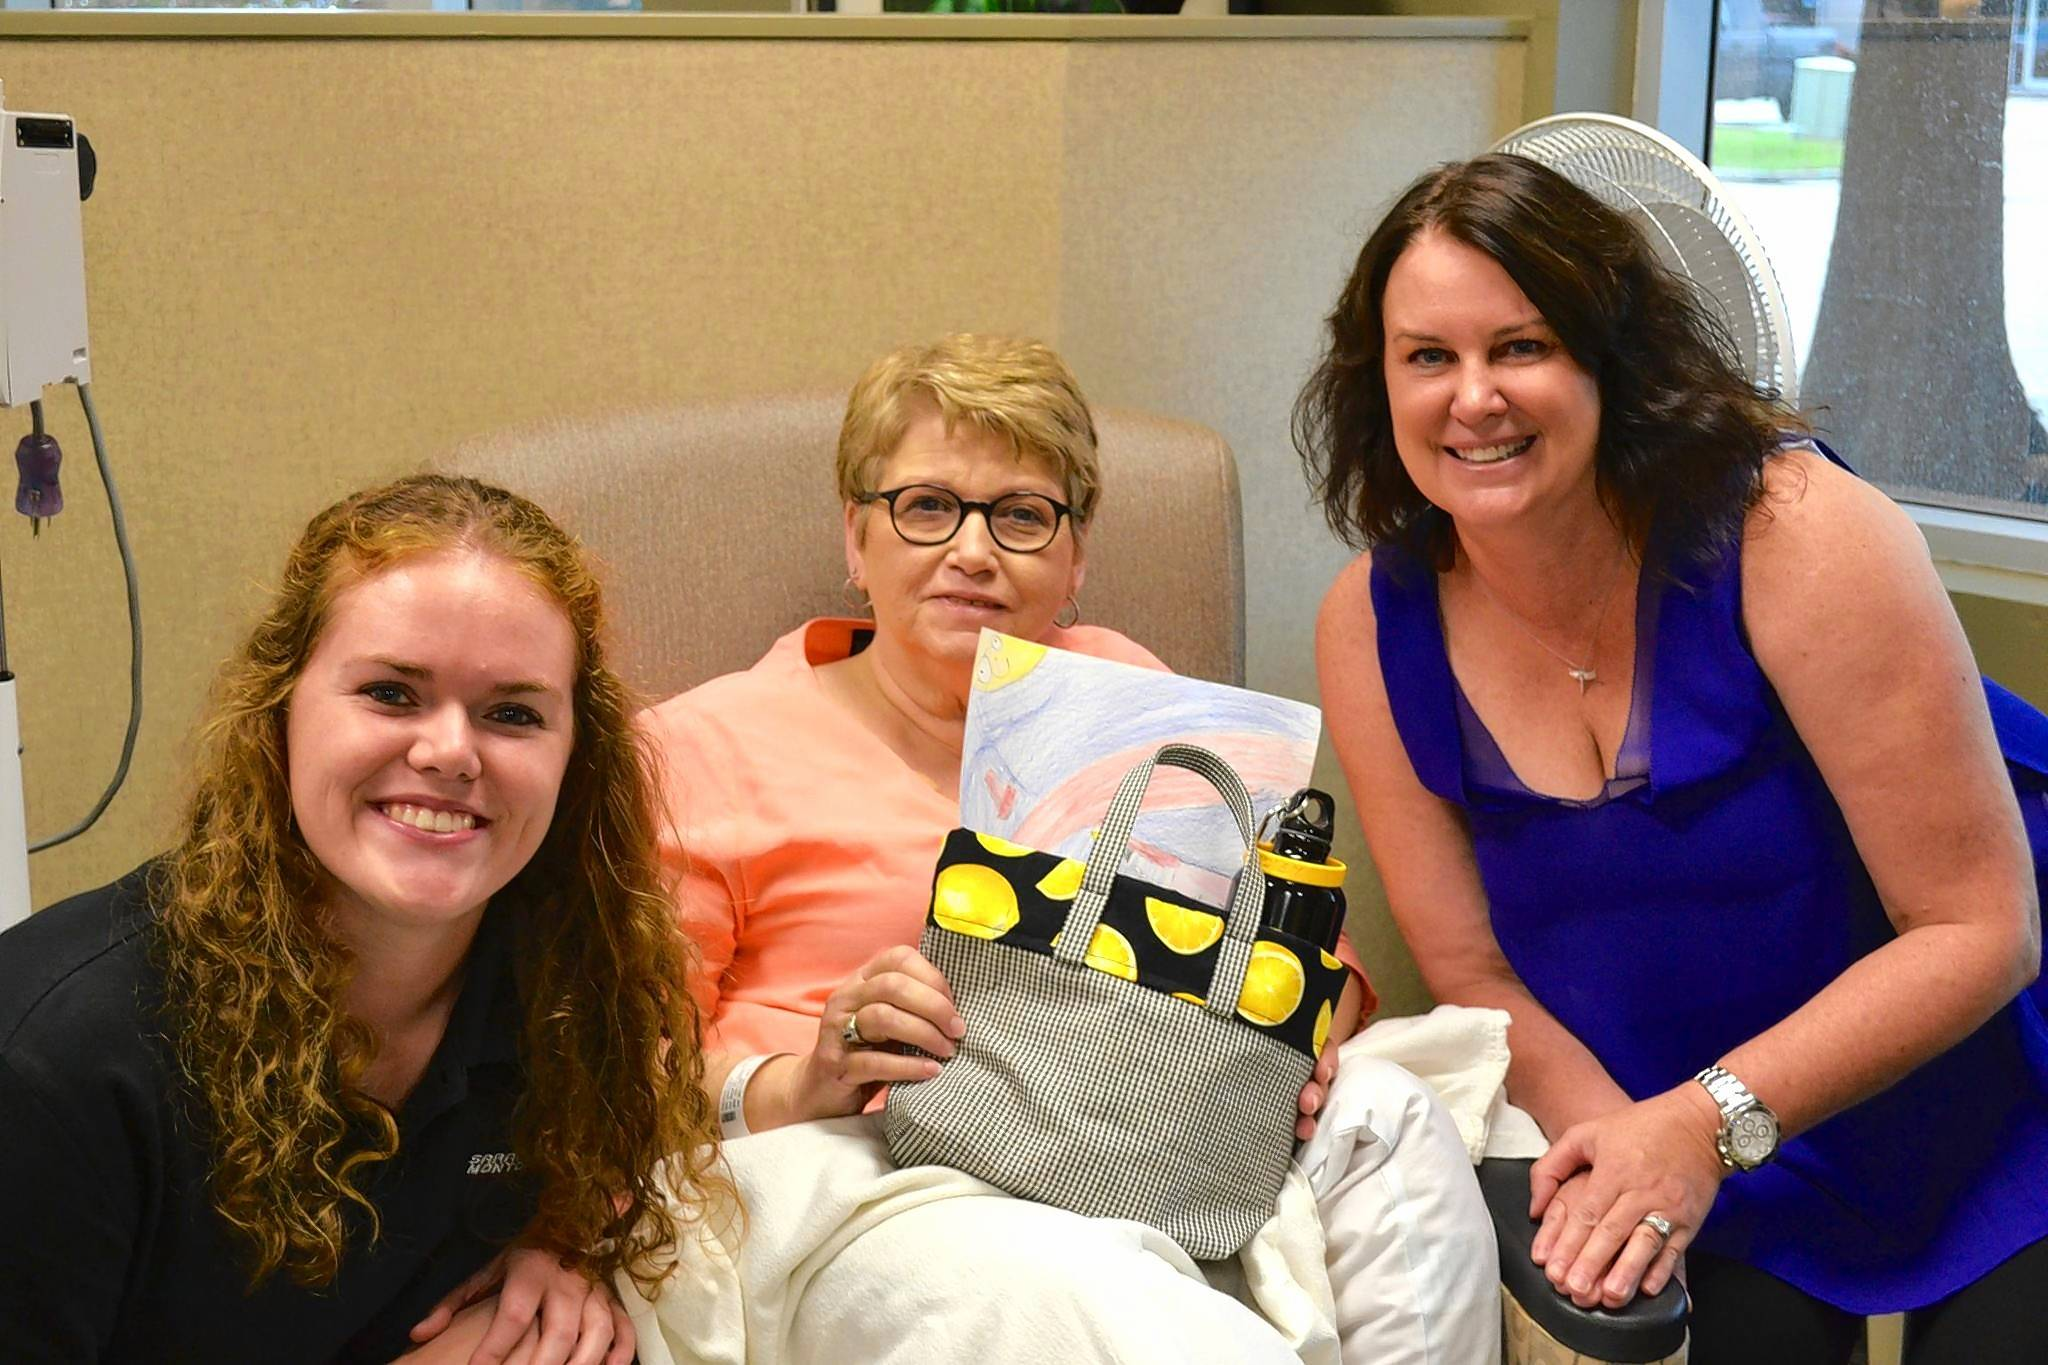 Mount Prospect woman's Lemons of Love brings relief to cancer patients